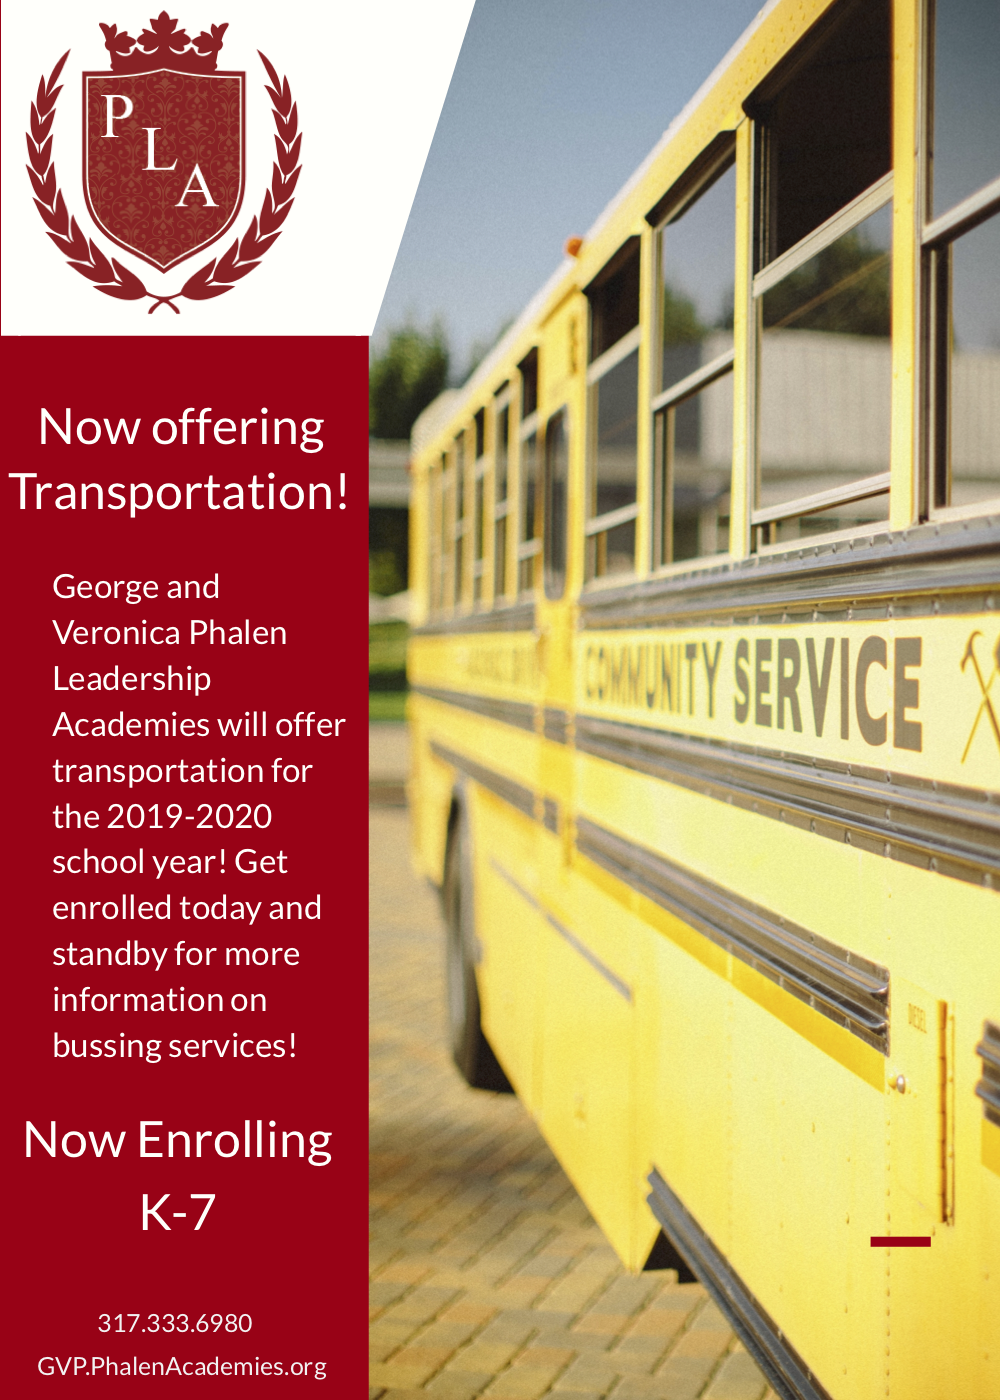 GVP Announces Bus Transportation for Next School Year!